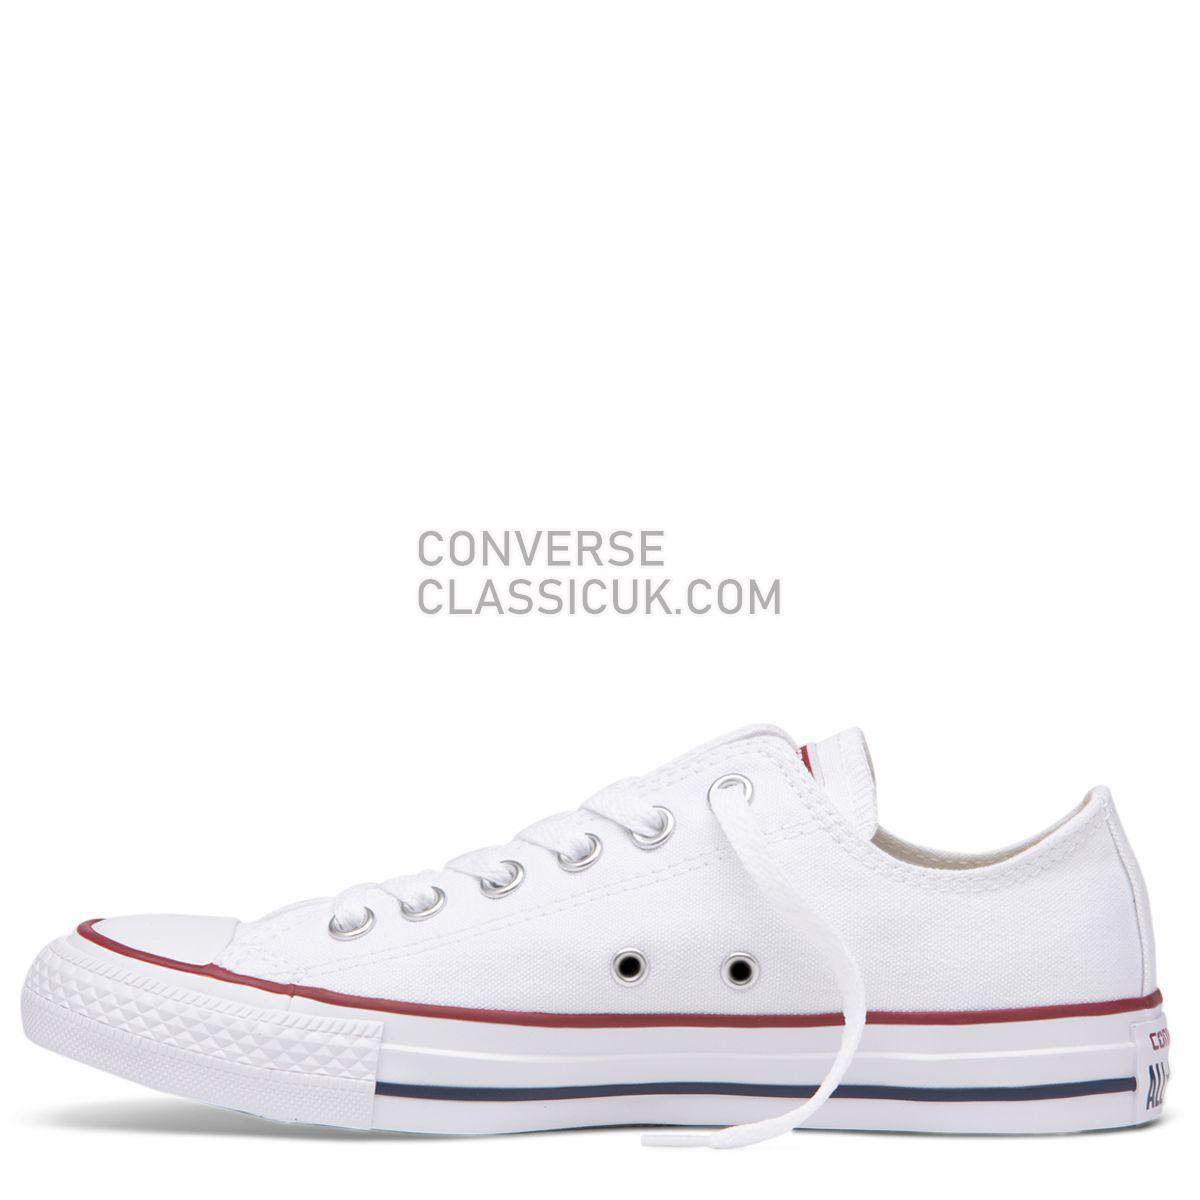 Converse Chuck Taylor All Star Classic Colour Low Top White Mens Womens Unisex 17652 White Shoes